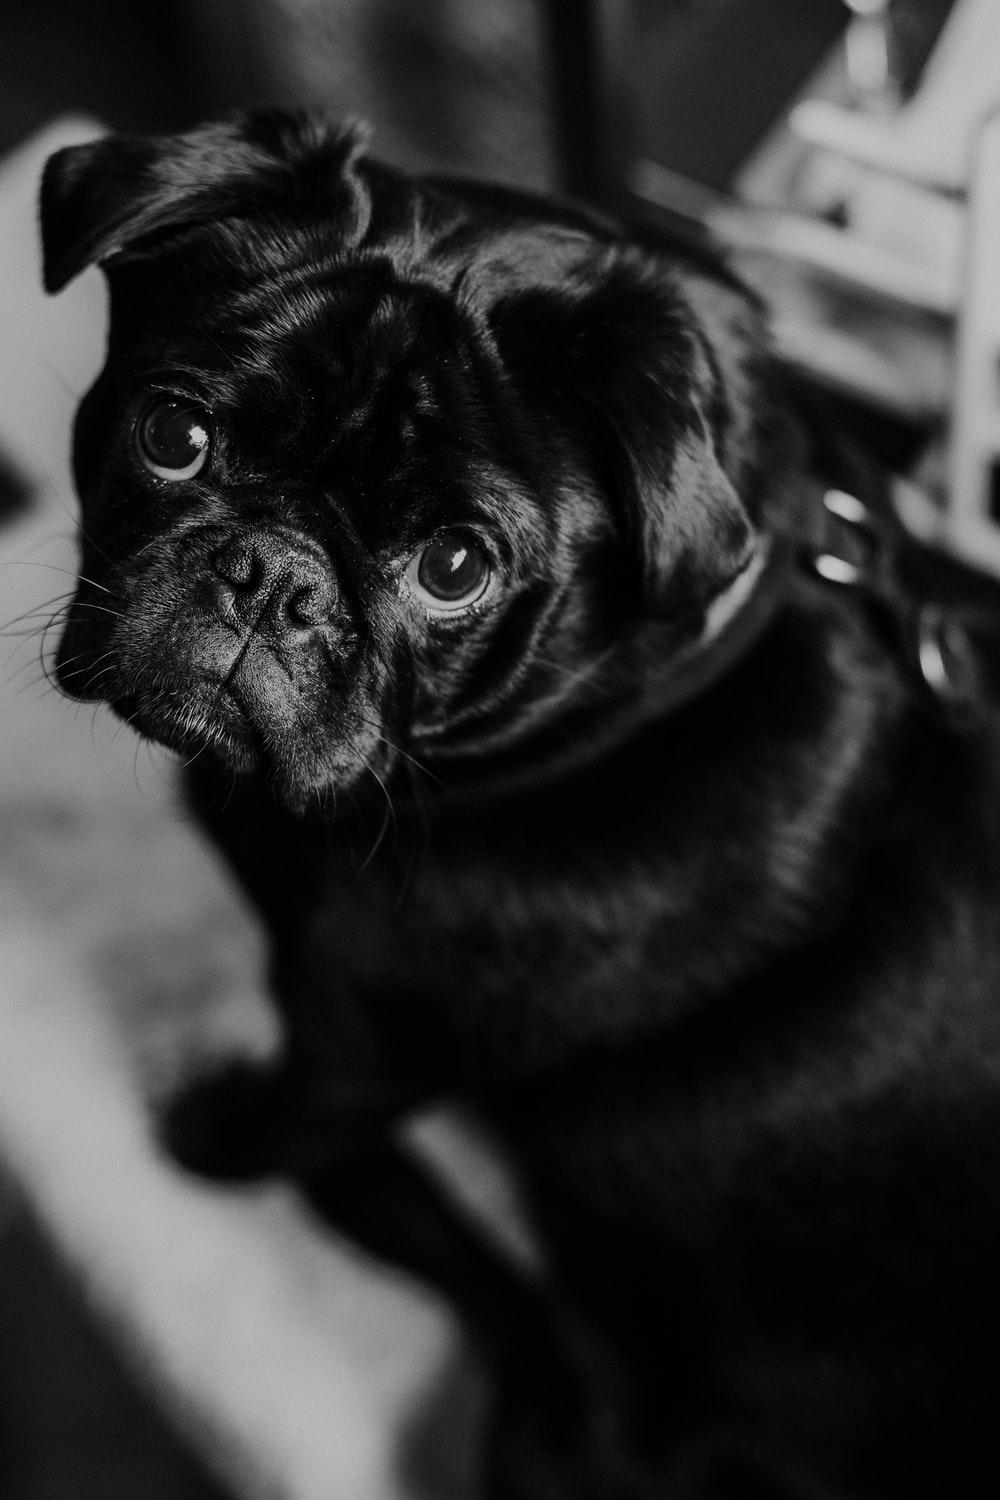 black pug in black and white